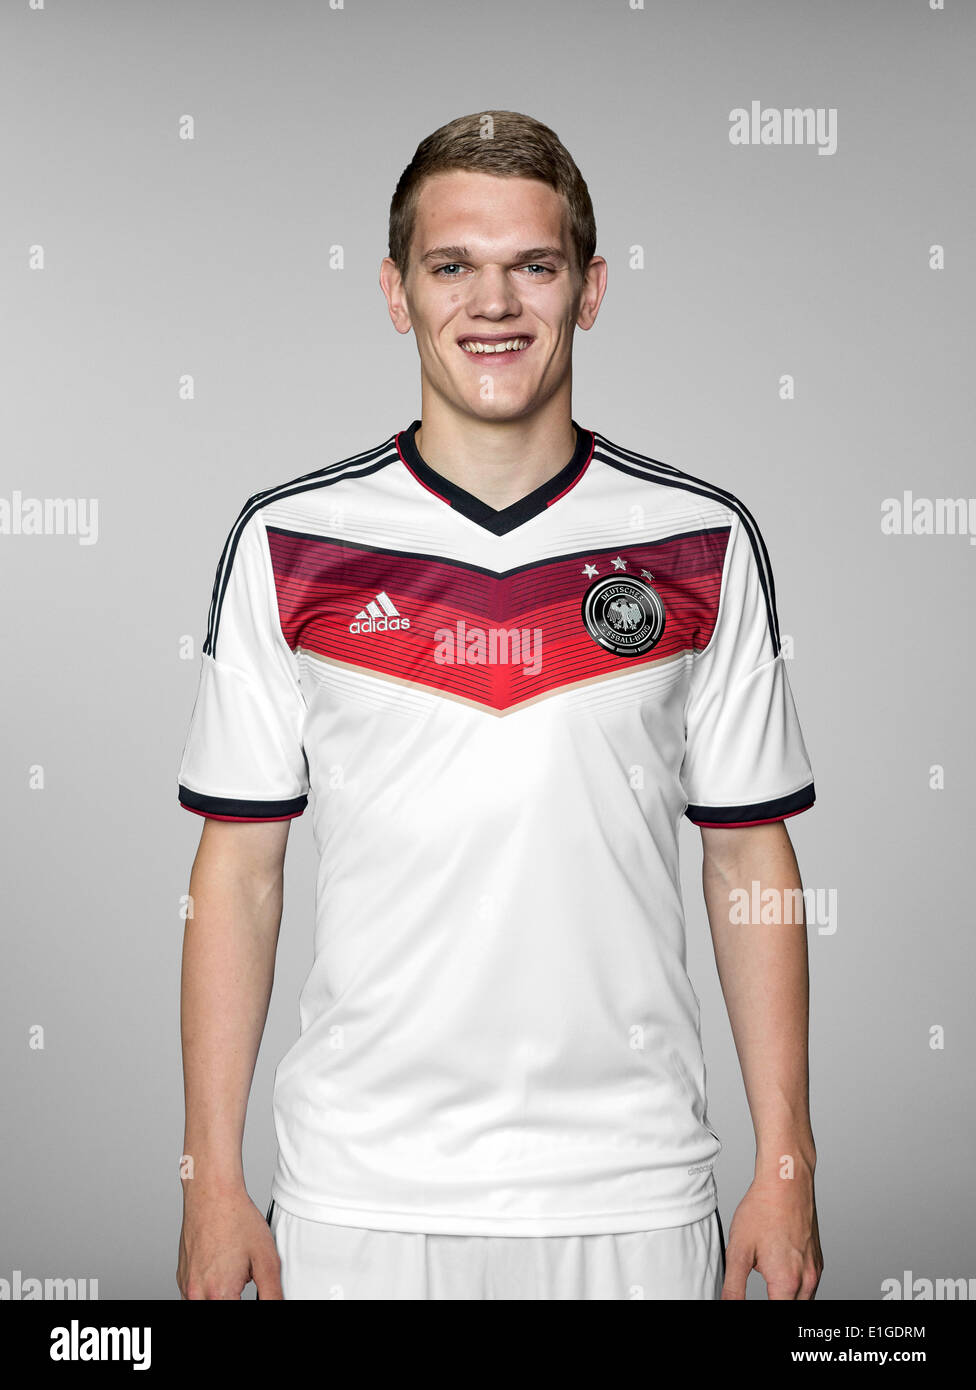 FIFA World Cup 2014 - photocall Team Germany, 24 May 2014 in Passeier, Italy: Matthias Ginter. Photo credit: Bongarts/Getty Images/German Football Association/dpa (editorial use only) - Stock Image